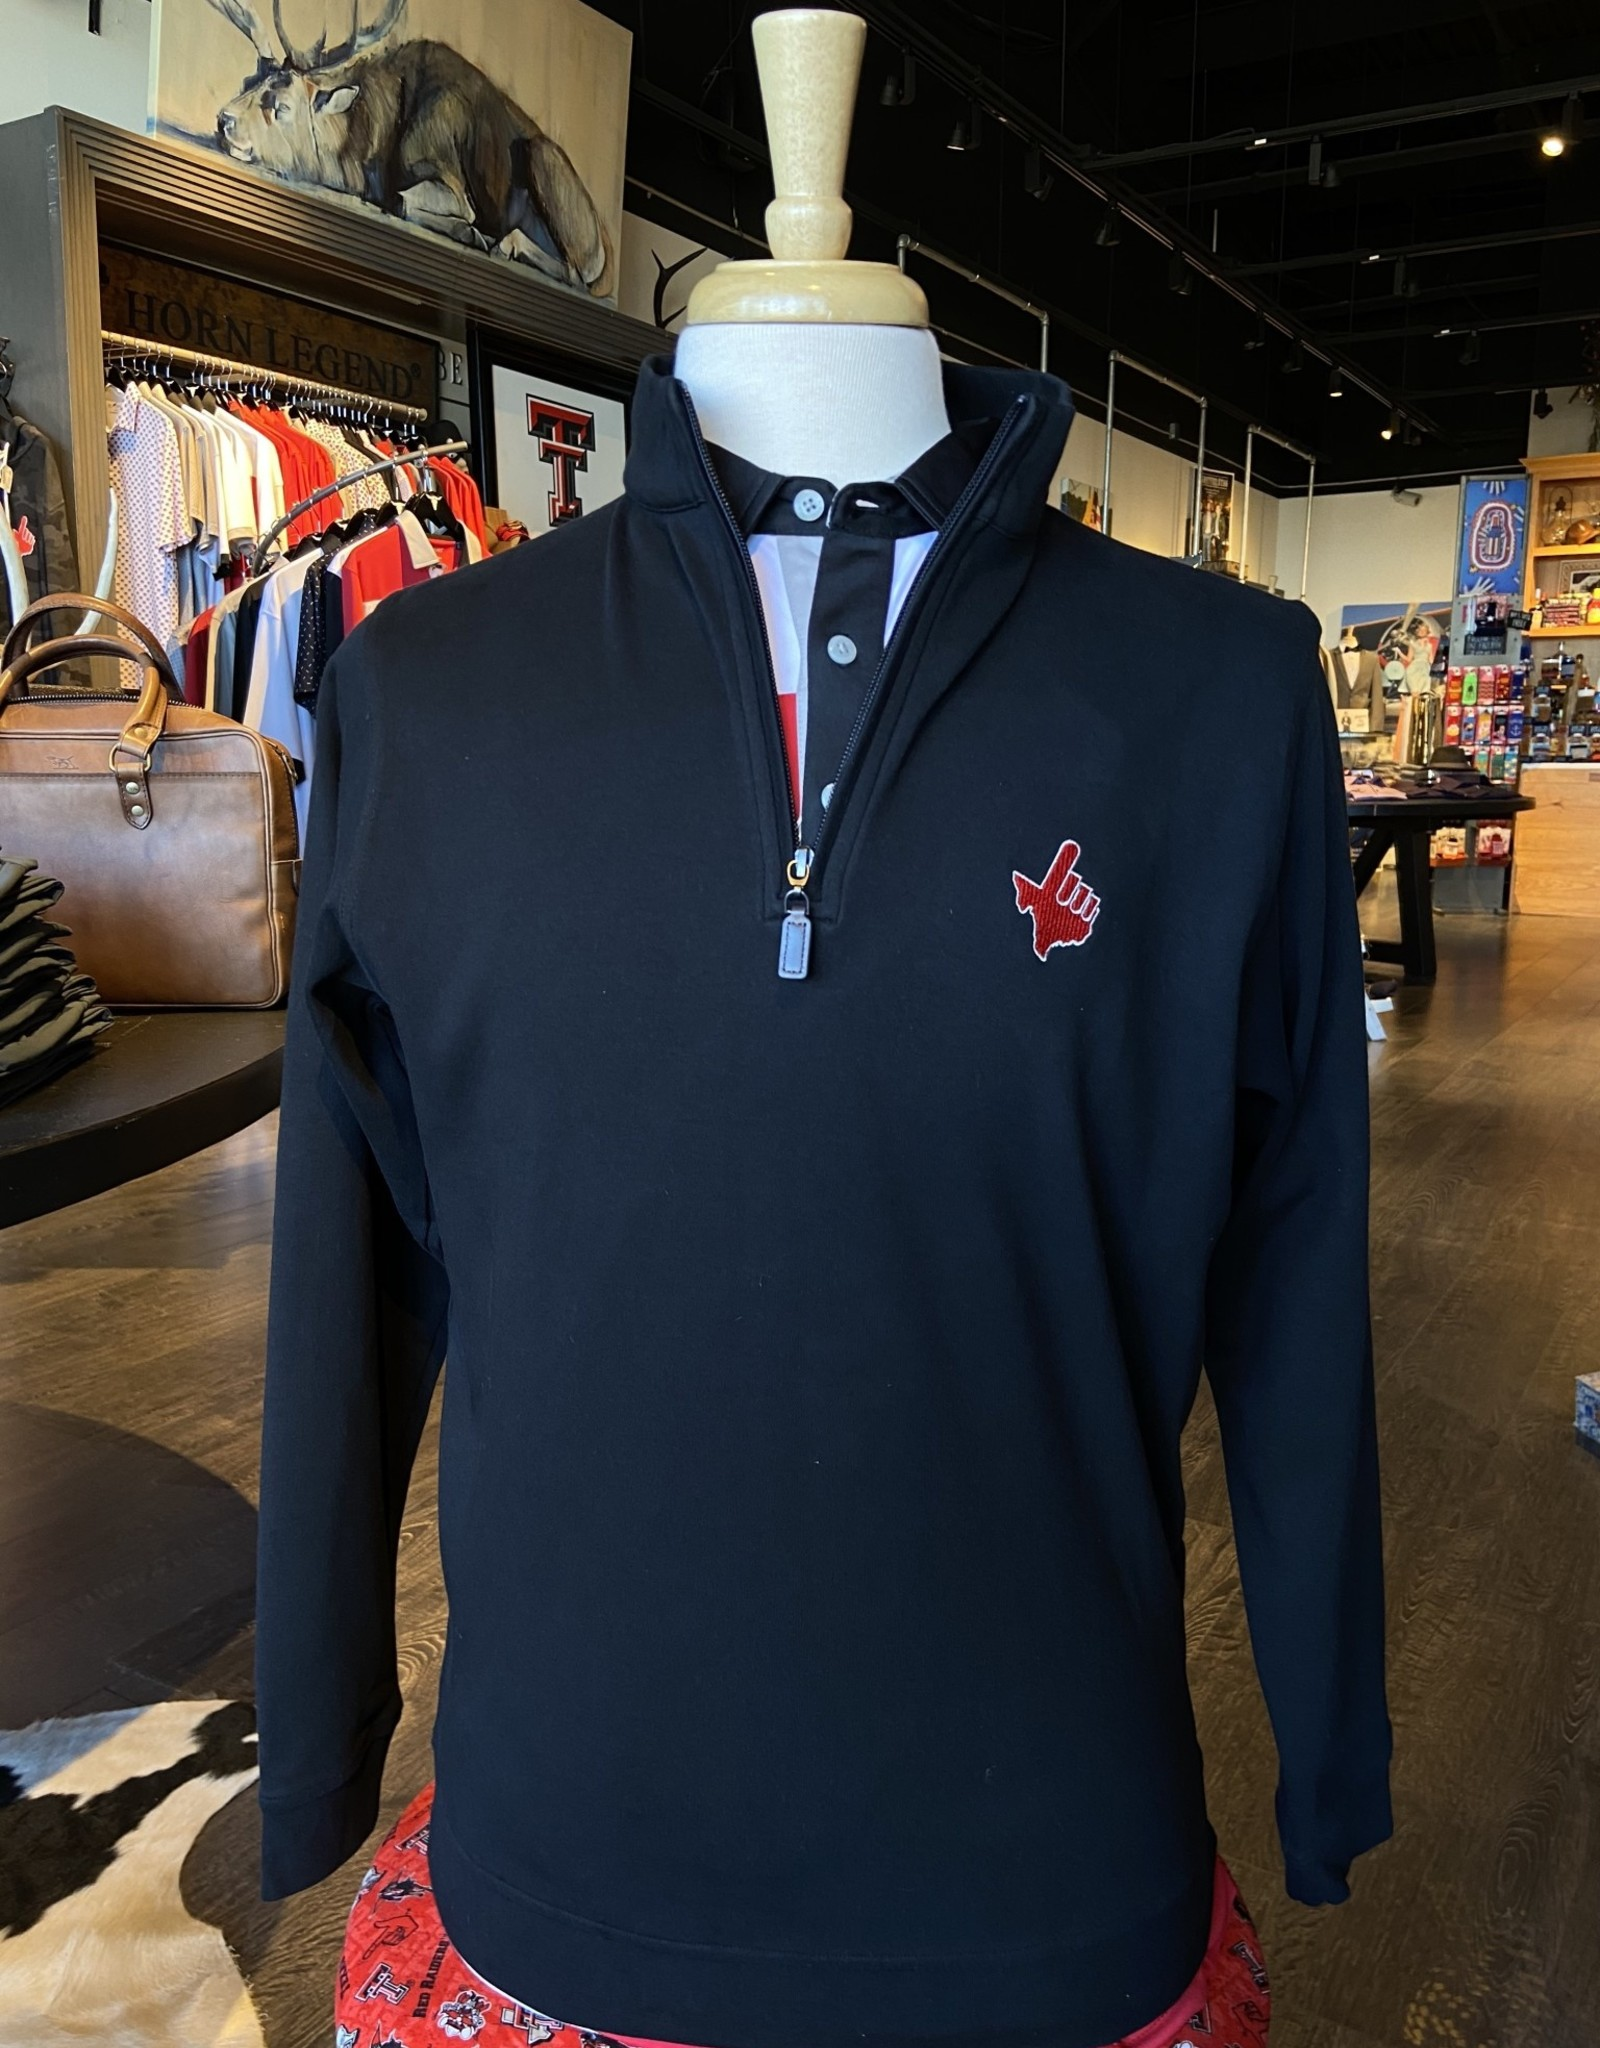 Stag GameDay Black 1/4 Zip Pullover Texas Hand/Wreck 'Em